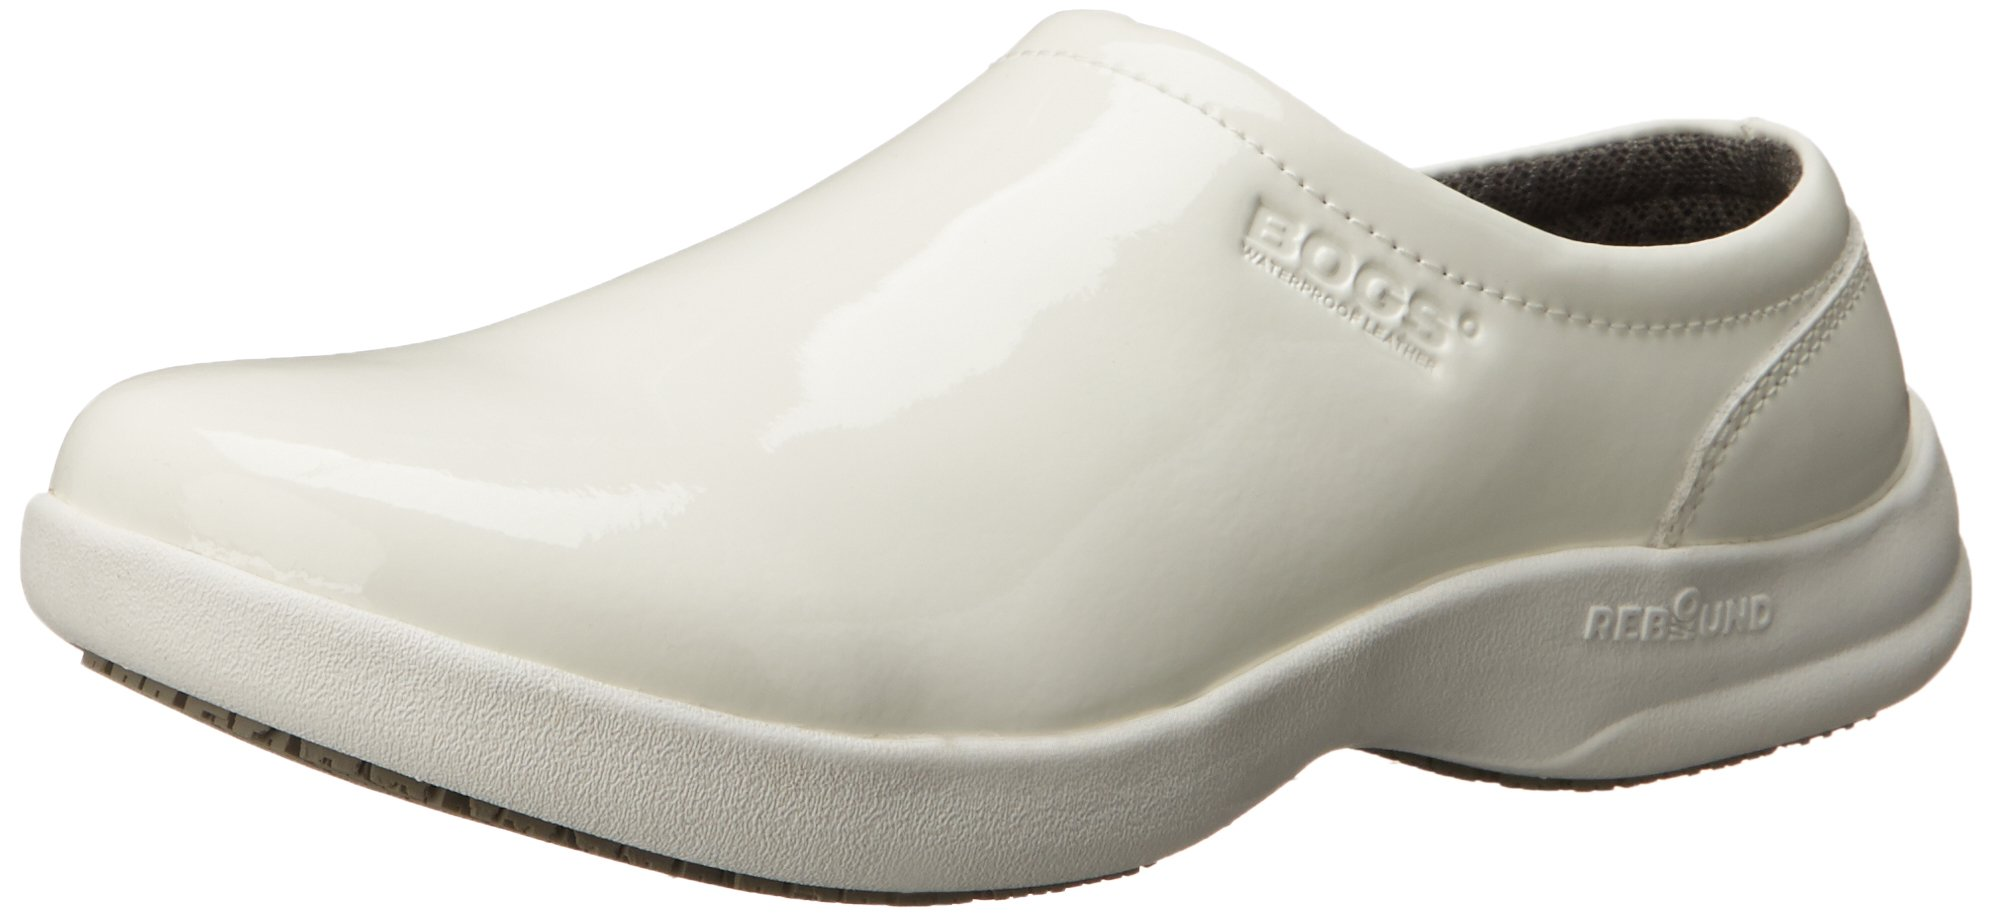 Bogs Women's Ramsey Patent Leather Slip Resistant Work Shoe, White, 8 M US